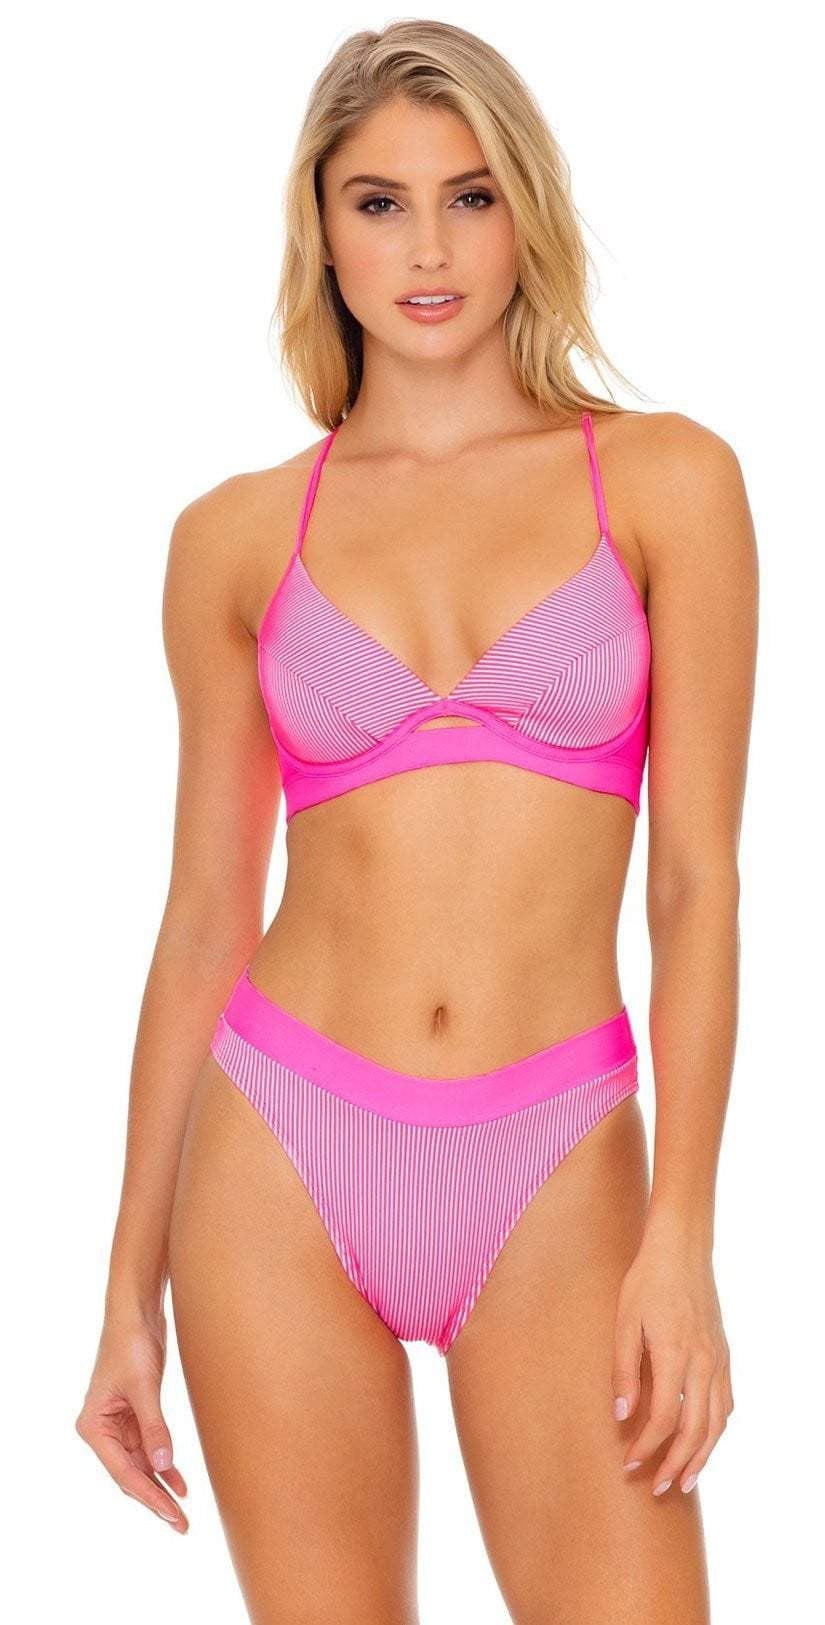 Luli Fama Luli Babe in Miami Underwire Top in Barbie Pink L633N17 516: